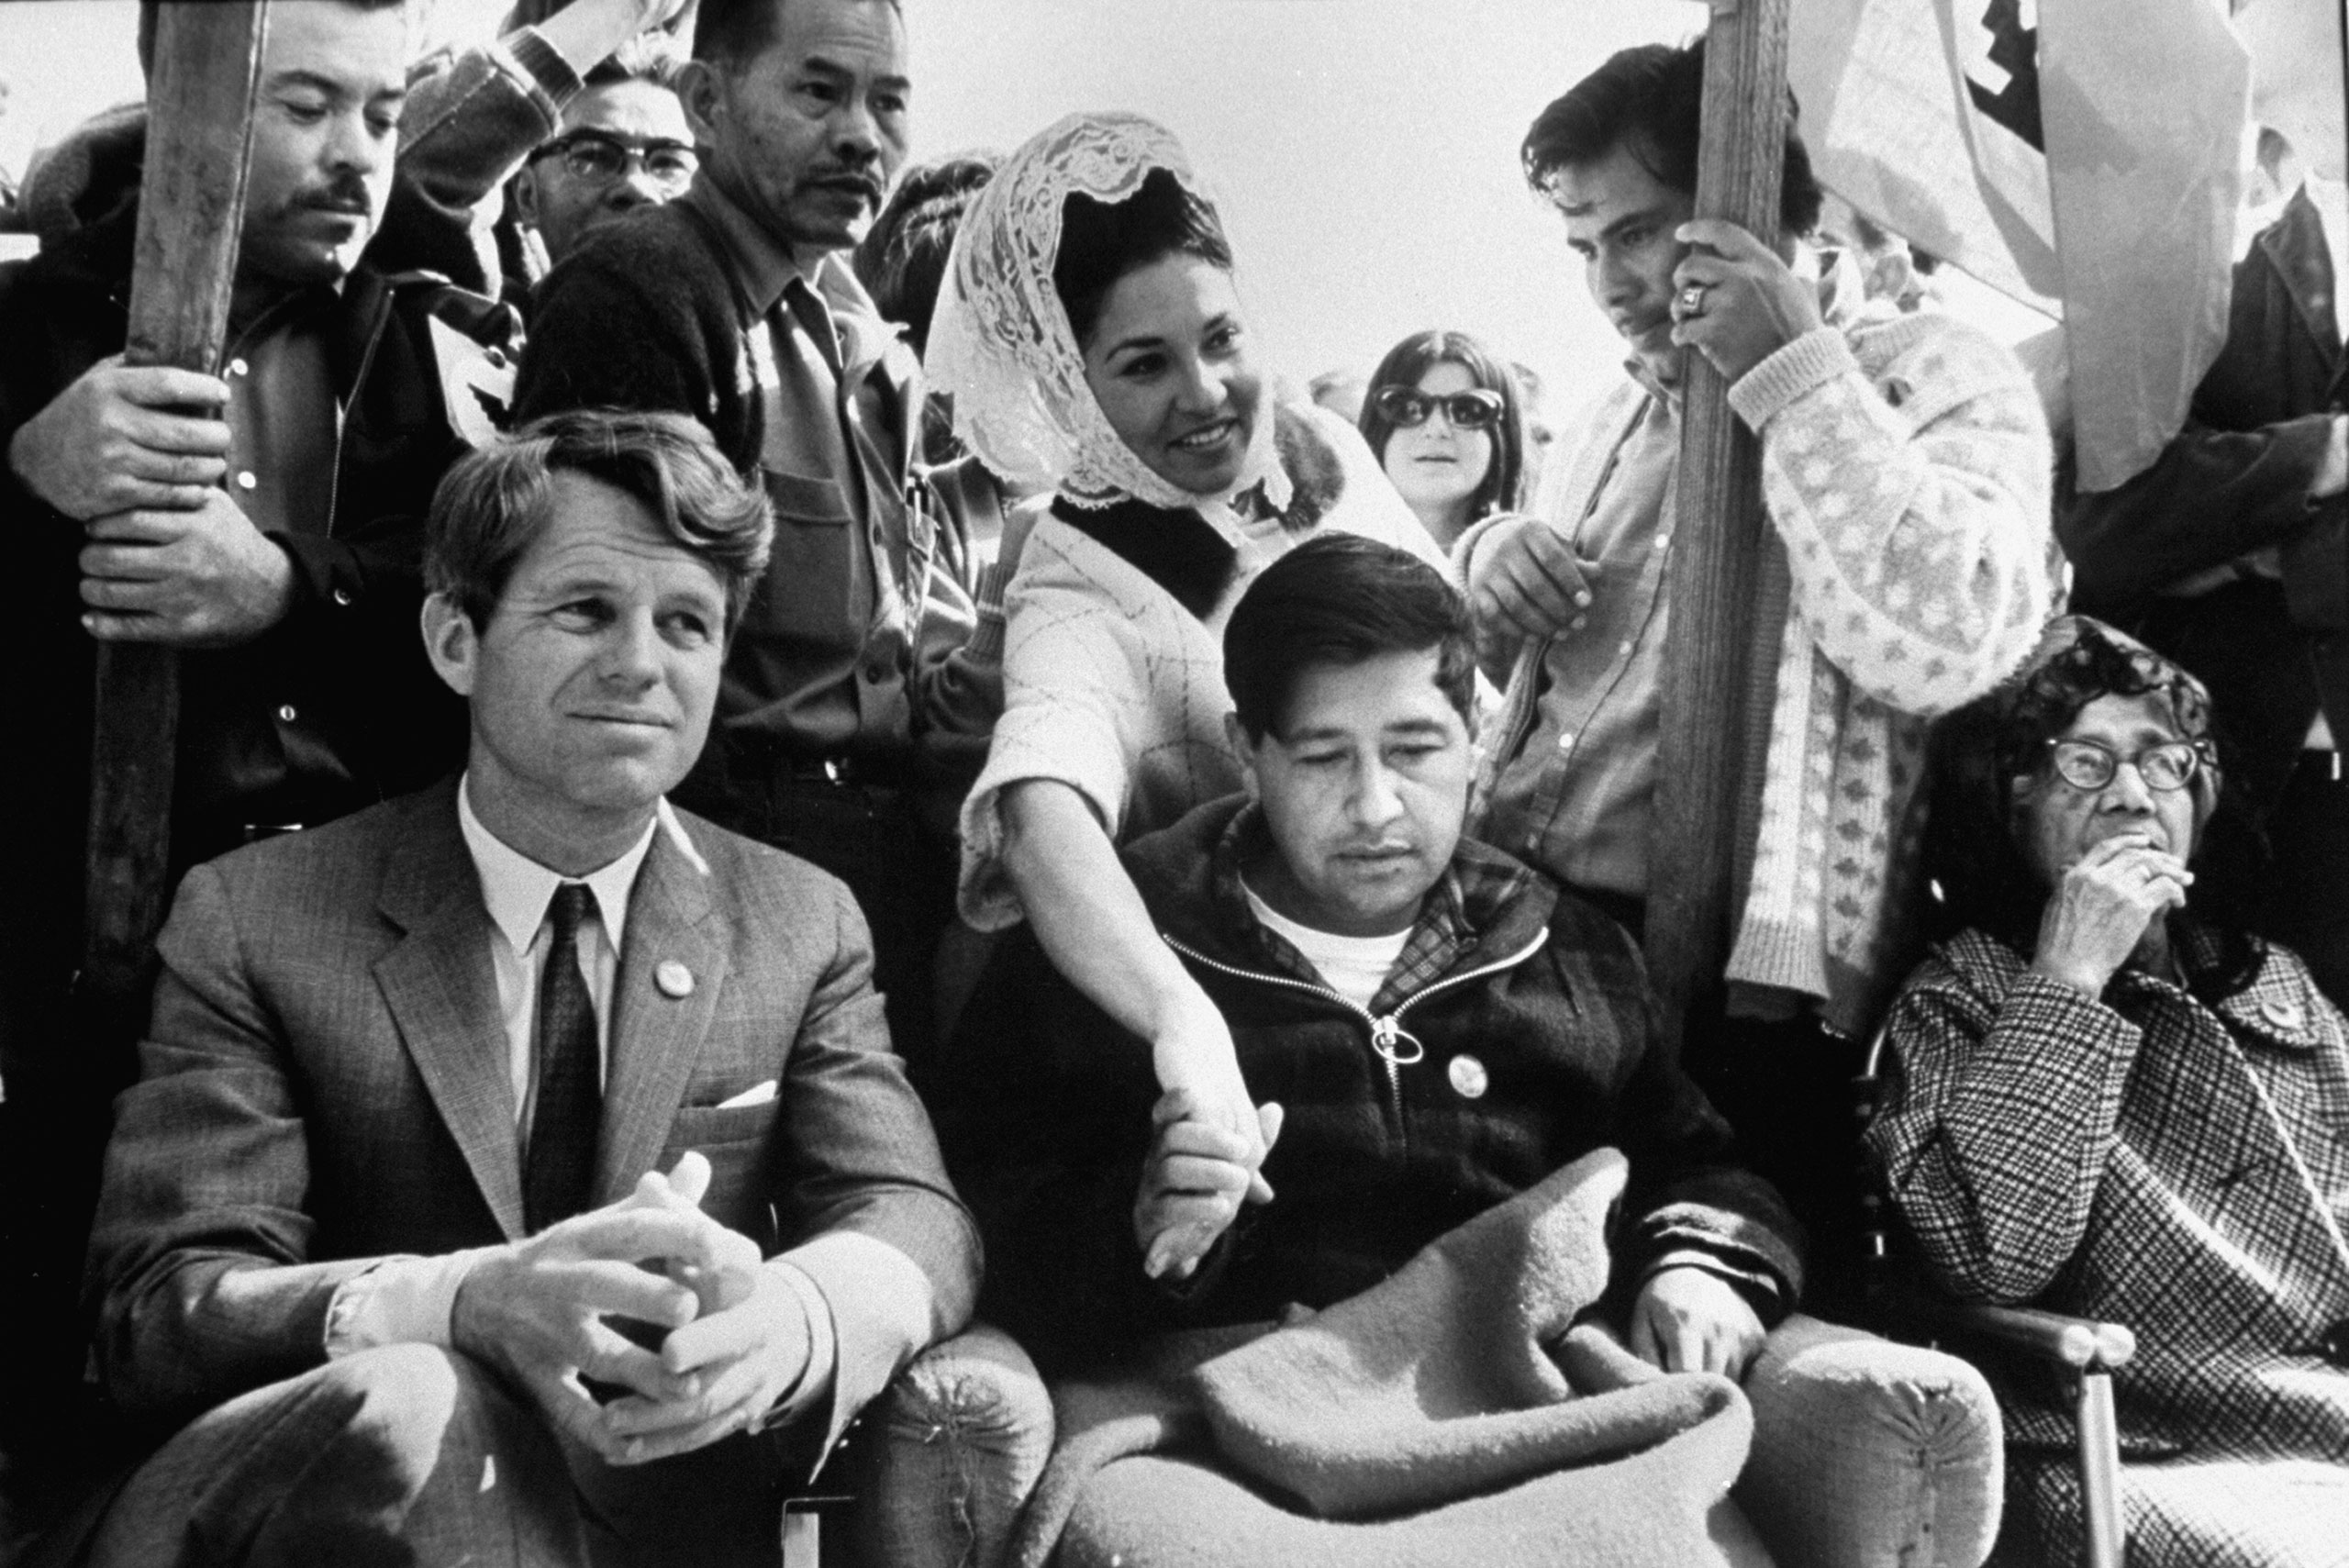 Robert F. Kennedy lends moral support to striking grape pickers and their leader, Cesar Chavez (on hunger strike), 1968.